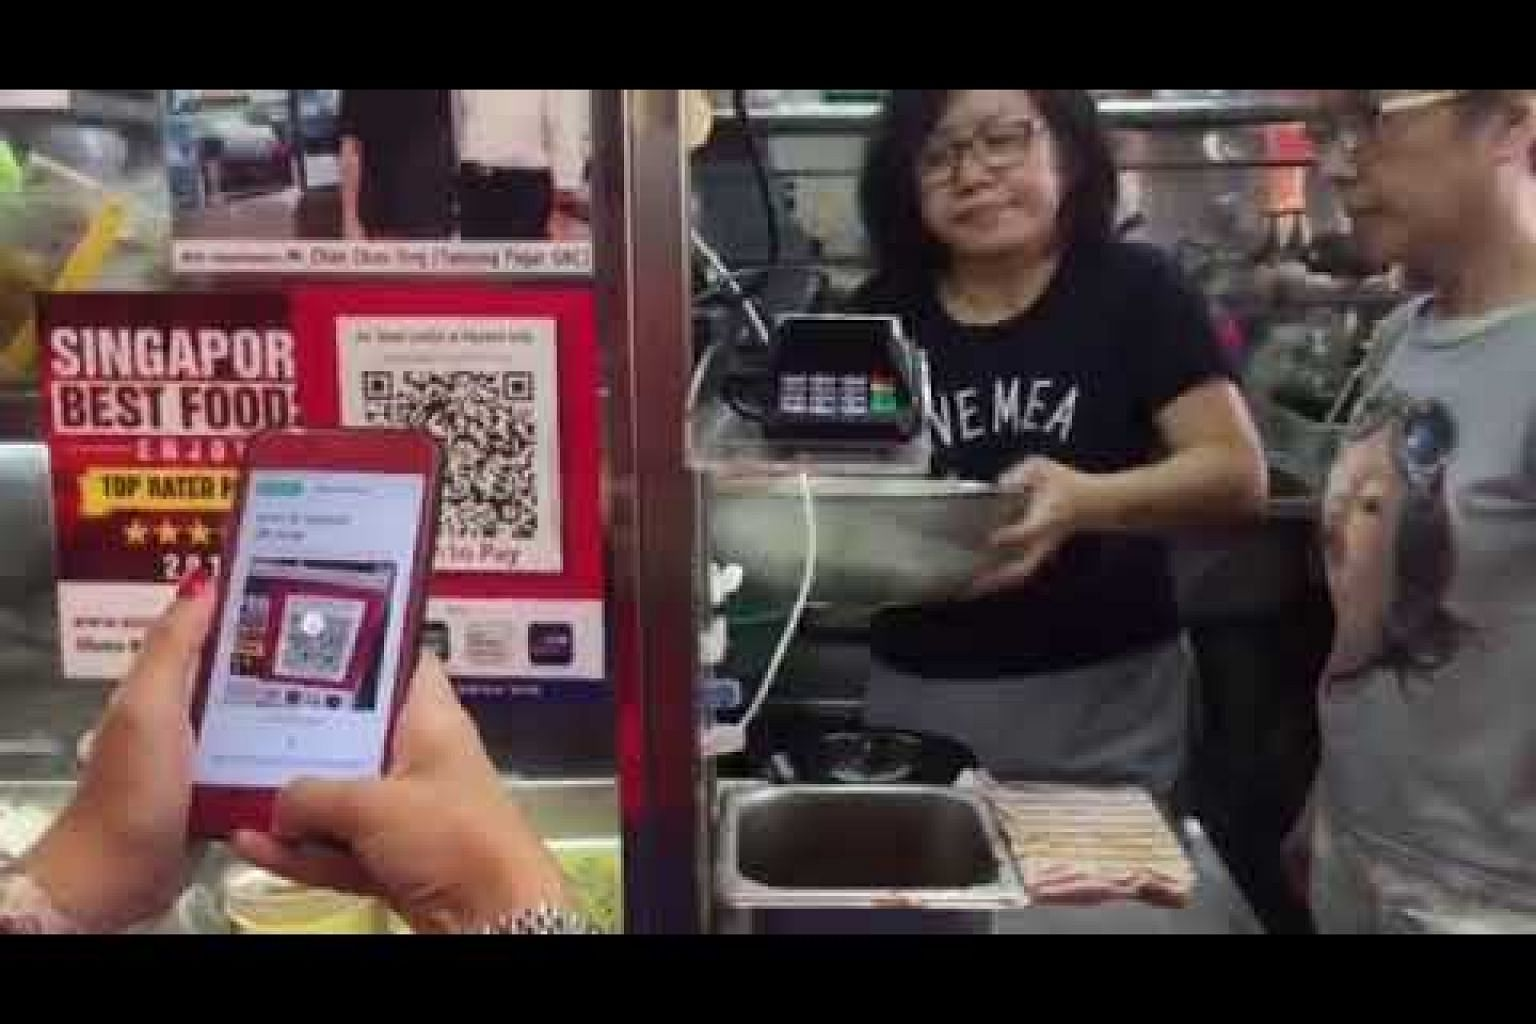 A customer scanning QR code to pay for meal